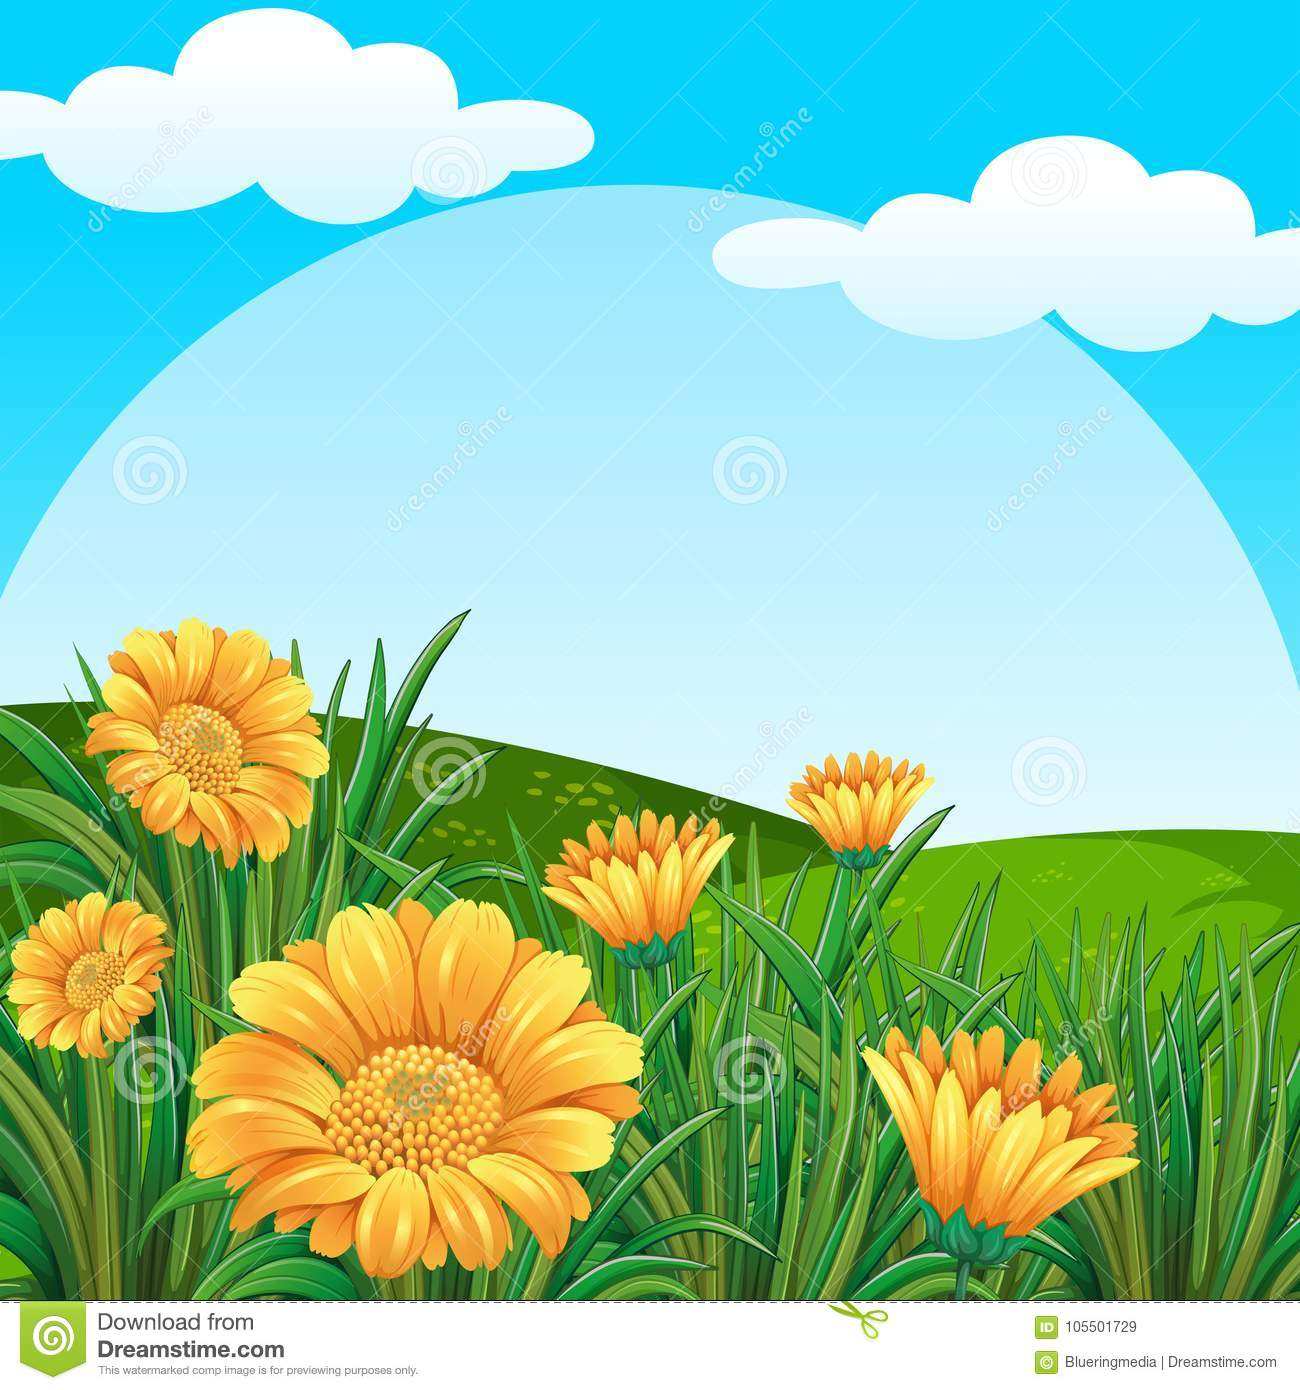 Background Scene With Yellow Flowers In Field Stock Vector